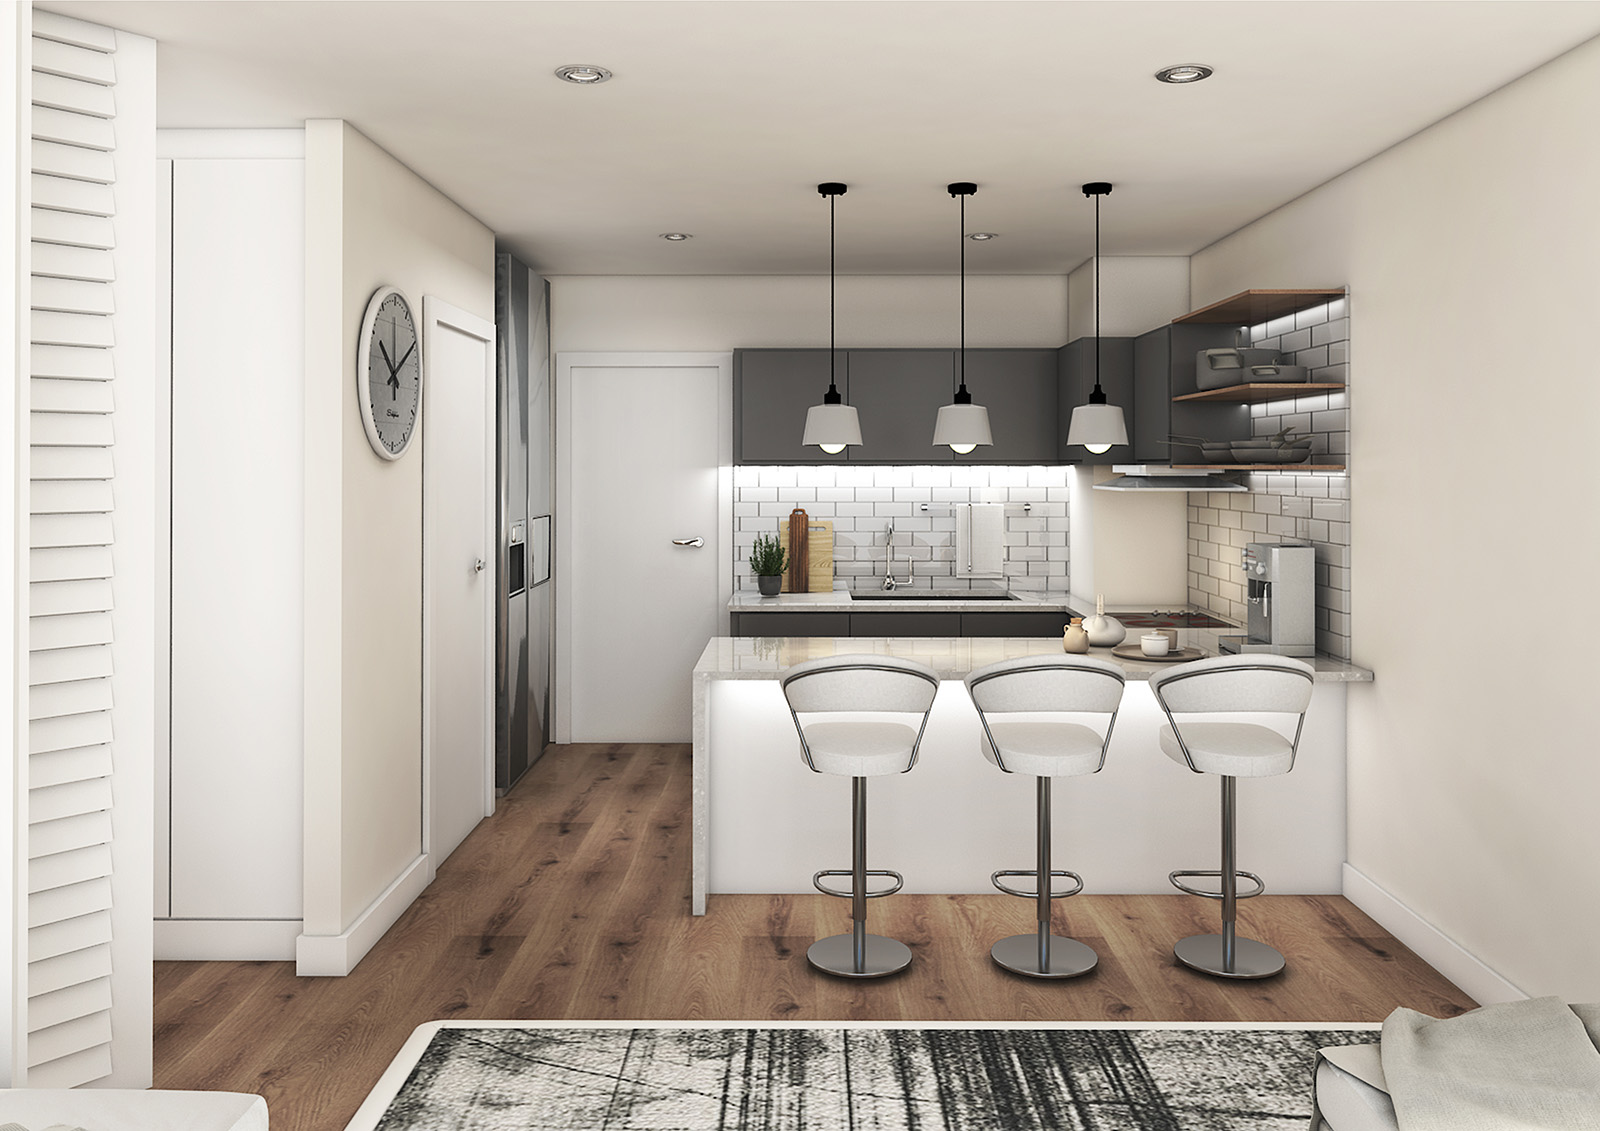 Just Invest, one-on-whiteley, unit-a, kitchen-view